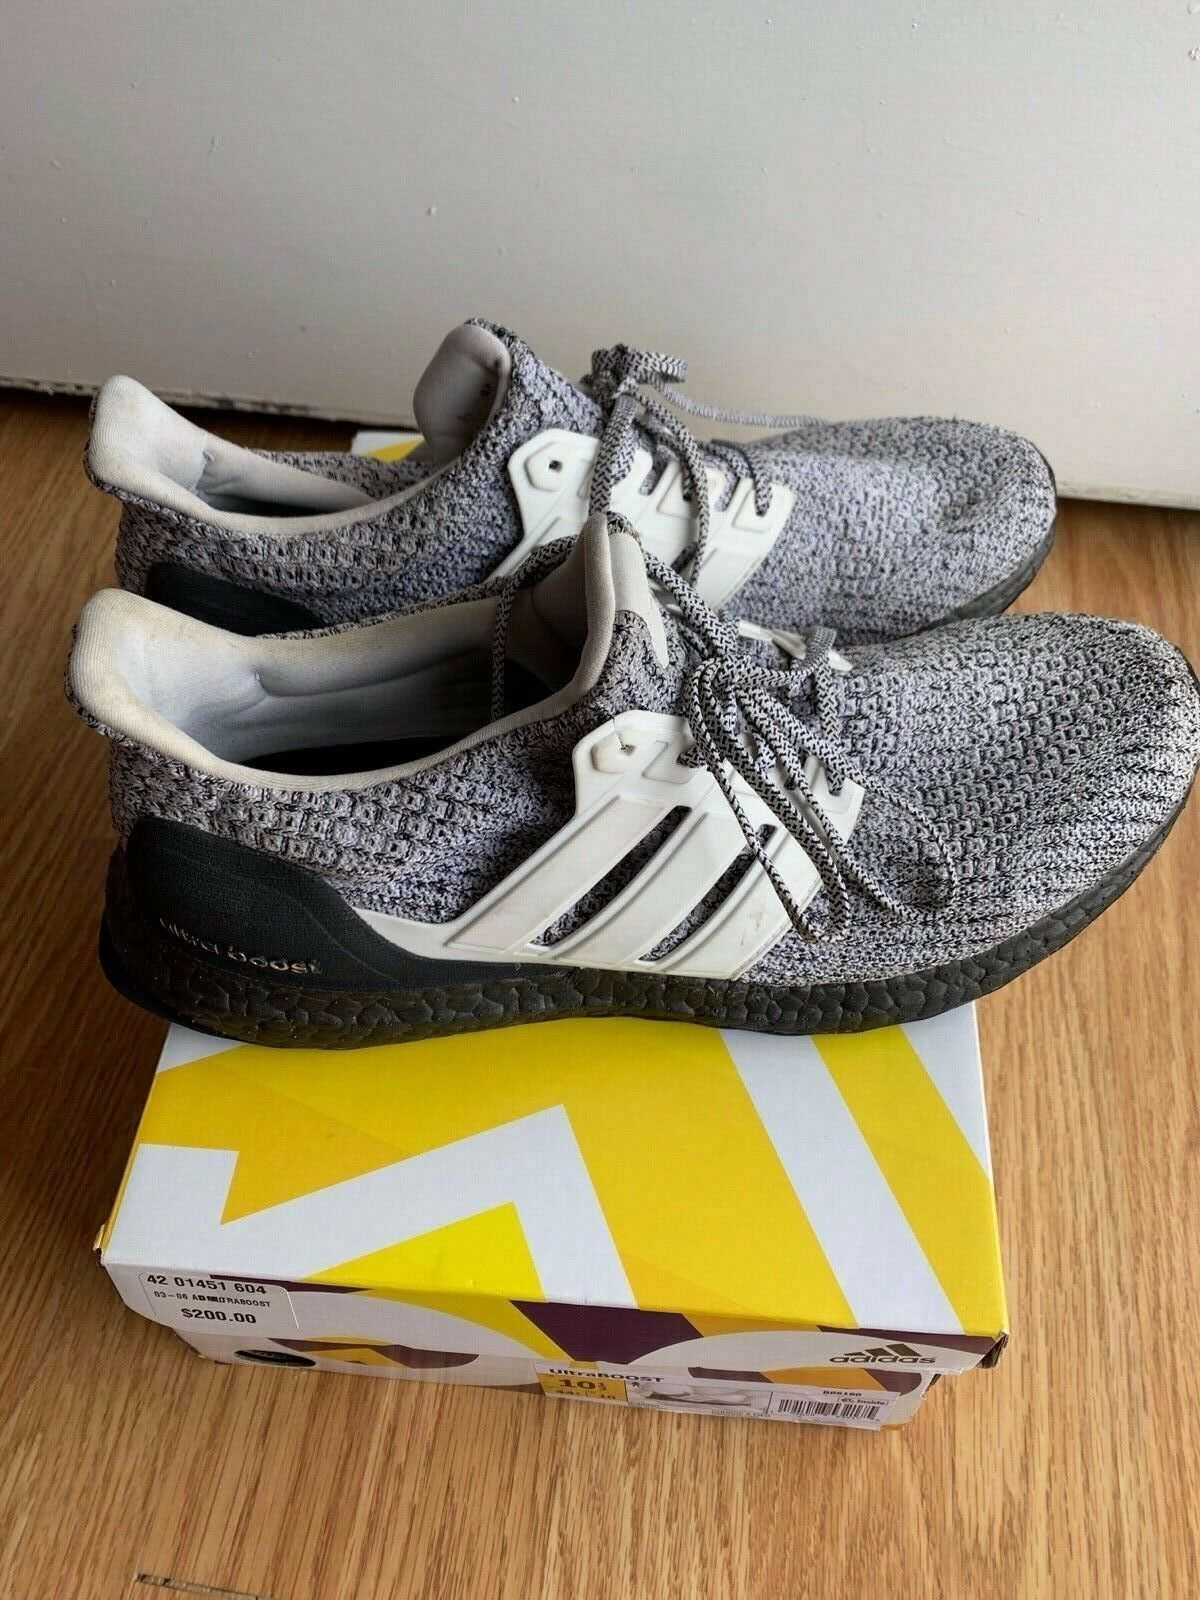 b38e66c560fa8 Adidas Ultra BOOST 4.0 Oreo BB6180 Cookies and Cream LTD Men s Size 10.5 US